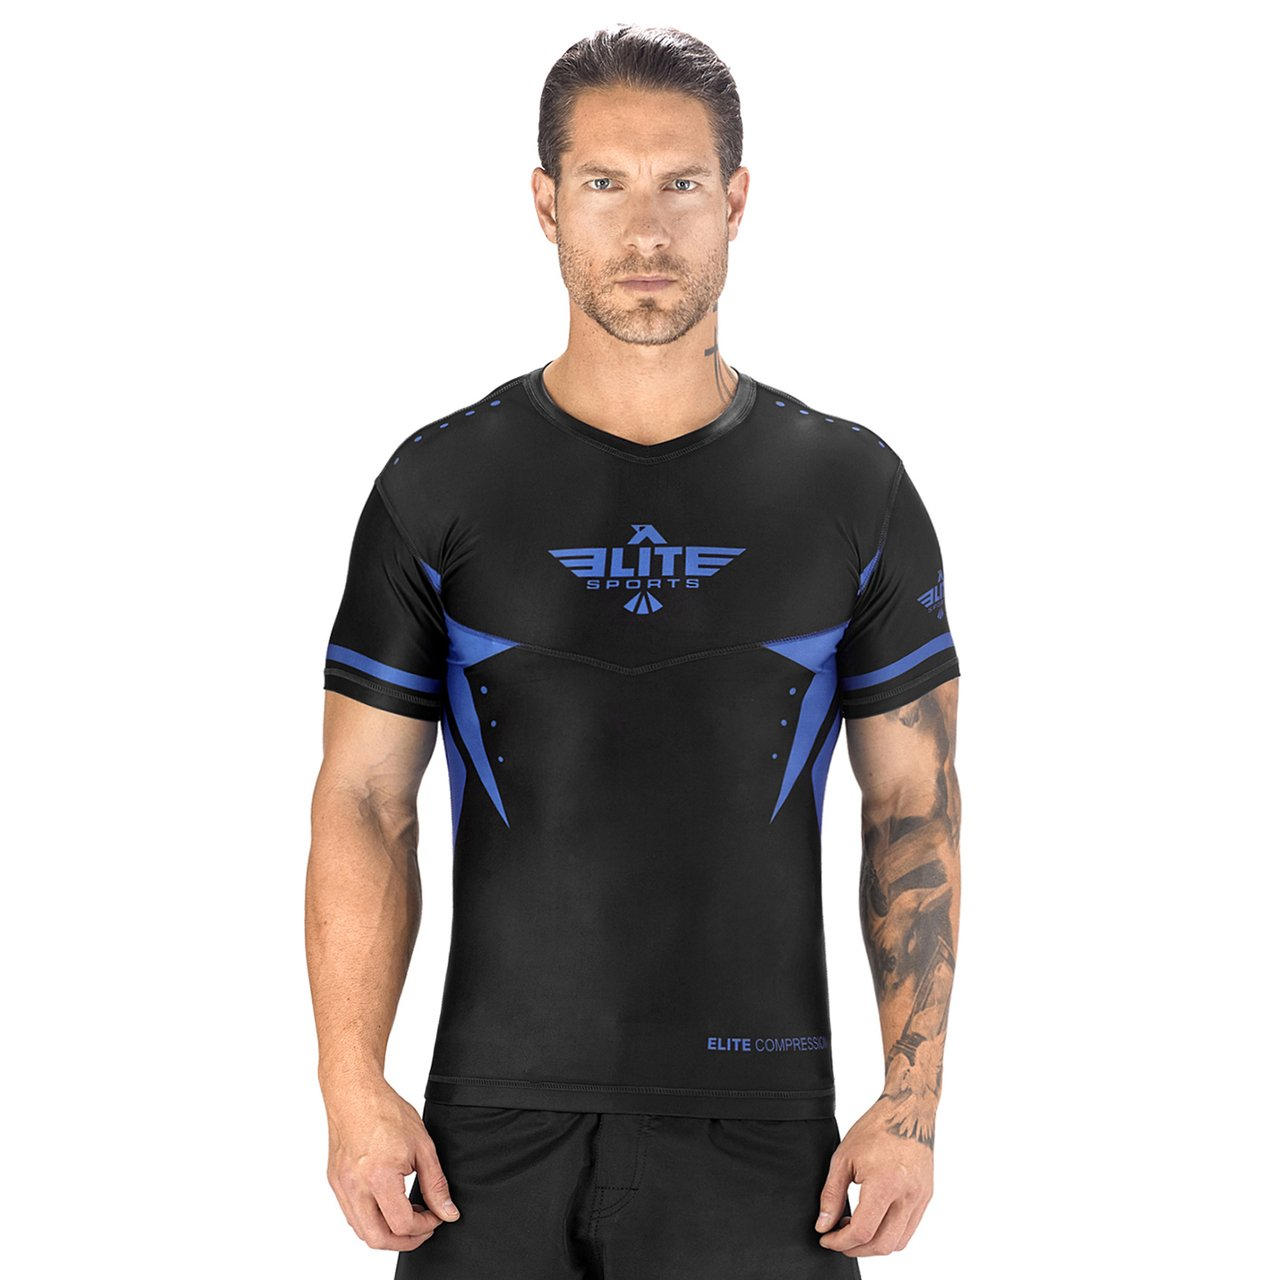 Load image into Gallery viewer, Elite Sports Star Series Sublimation Black/Blue Short Sleeve Brazilian Jiu Jitsu BJJ Rash Guard